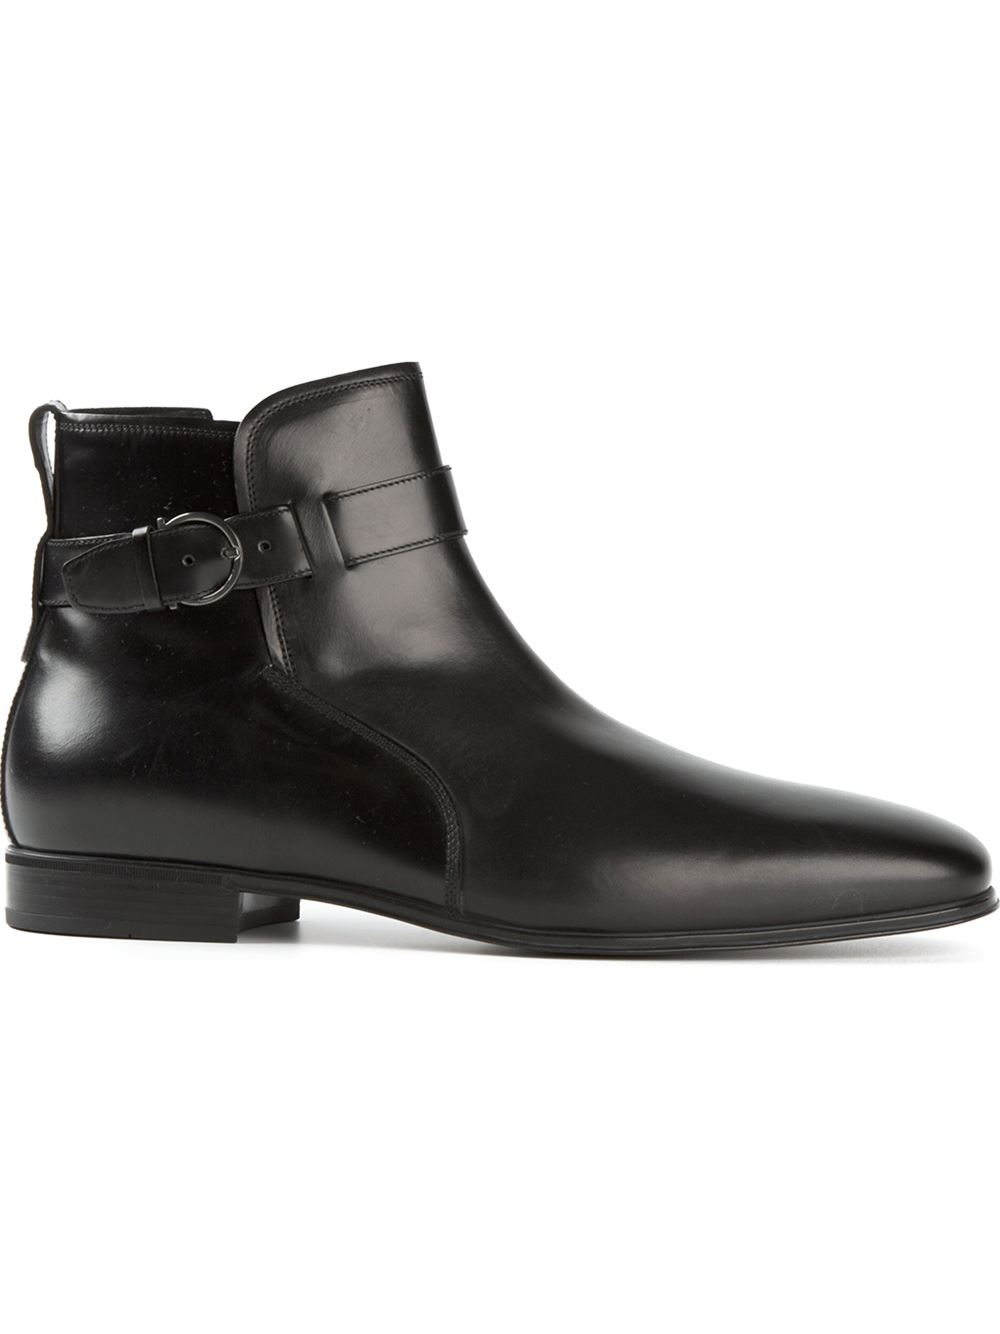 ferragamo buckled boots in black for lyst